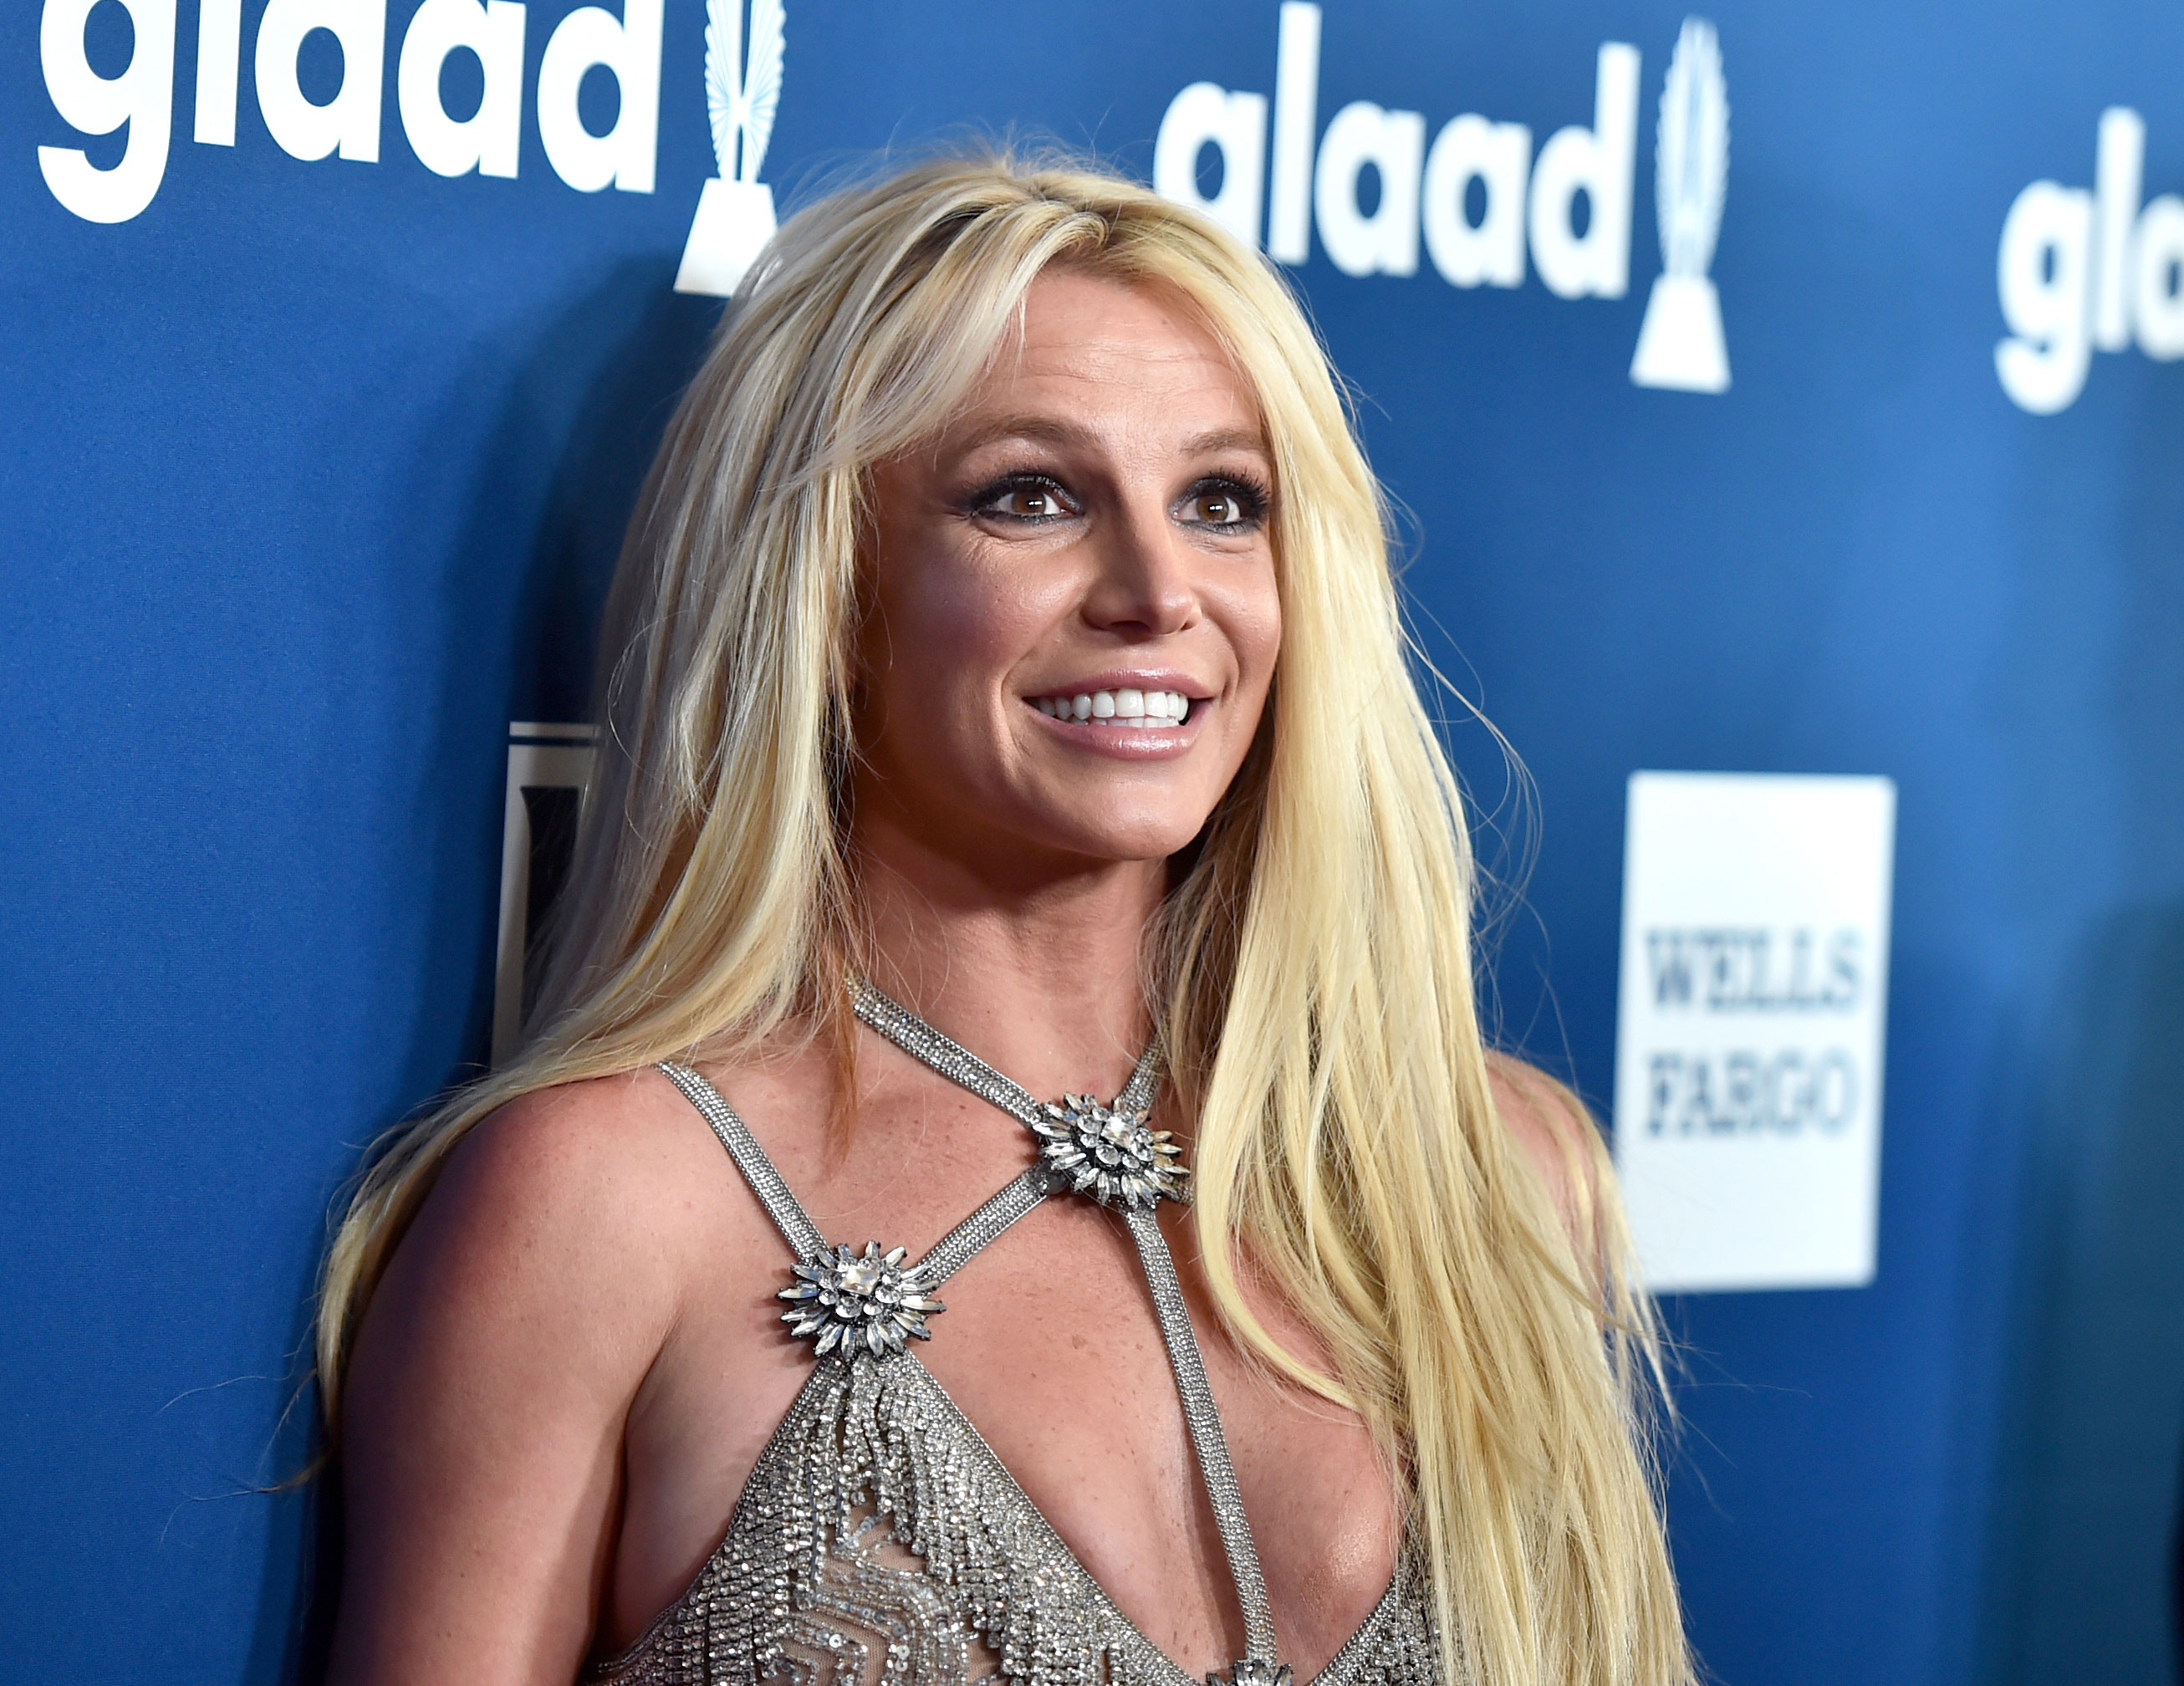 Britney Spears debuts previously unreleased song on her birthday